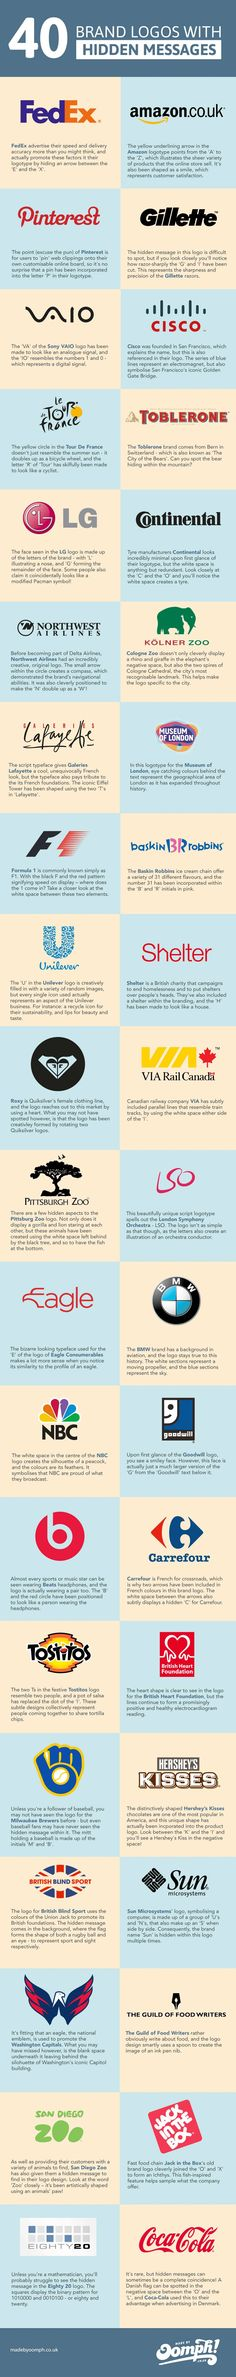 Have you ever thought what hidden messages the iconic logos are carrying with them? This infographic reveals 40 brand logos with hidden messages.